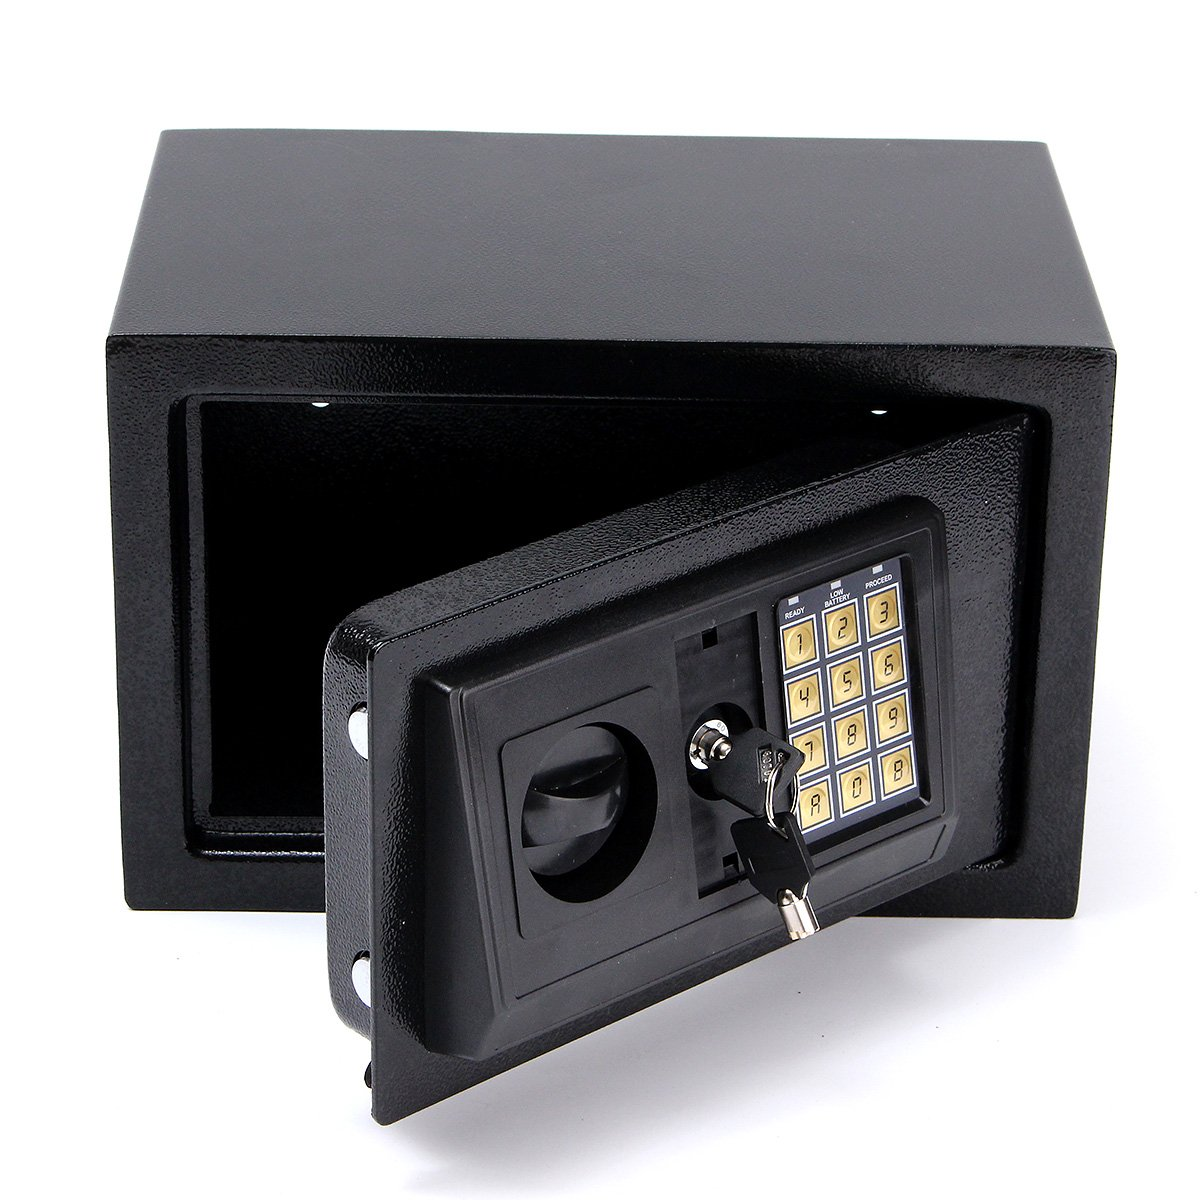 SAFETYON Electronic Security Safes Lock Box Case with Lock and Keys Jewelry Cash Gun Box